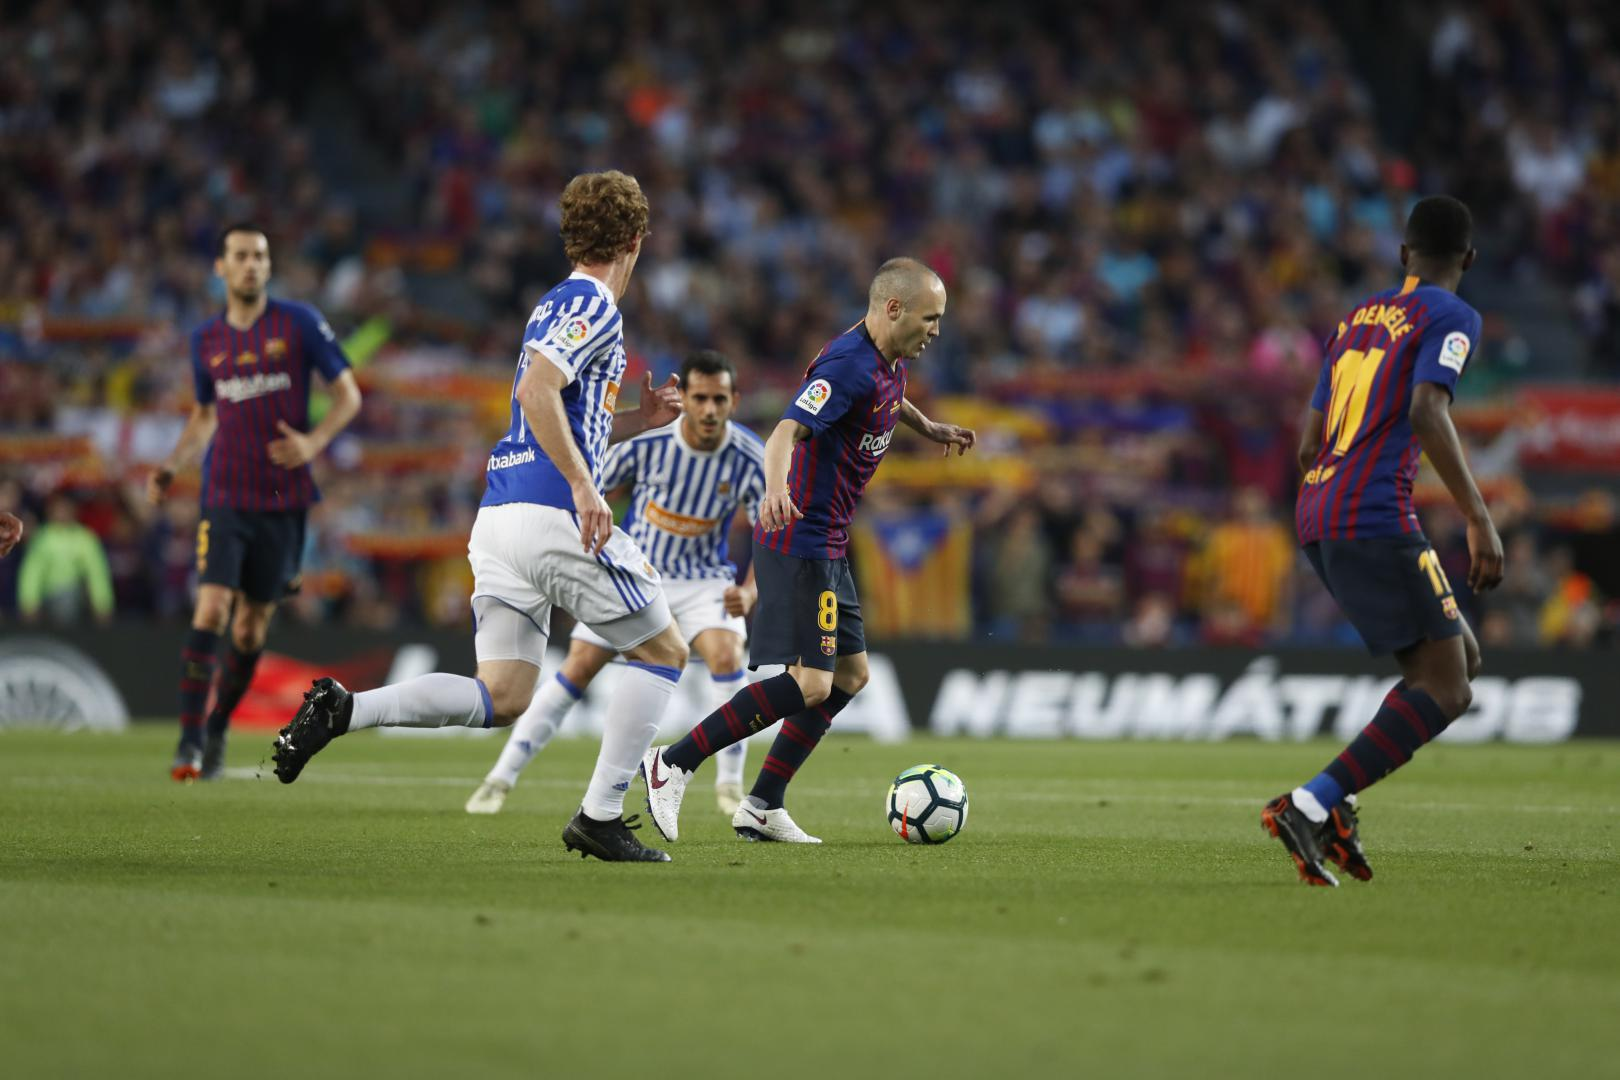 20: Barça have the upper hand but no goals yet at Camp Nou! #BarçaRealSociedad (0-0) https://t.co/cBJQcRaPYY